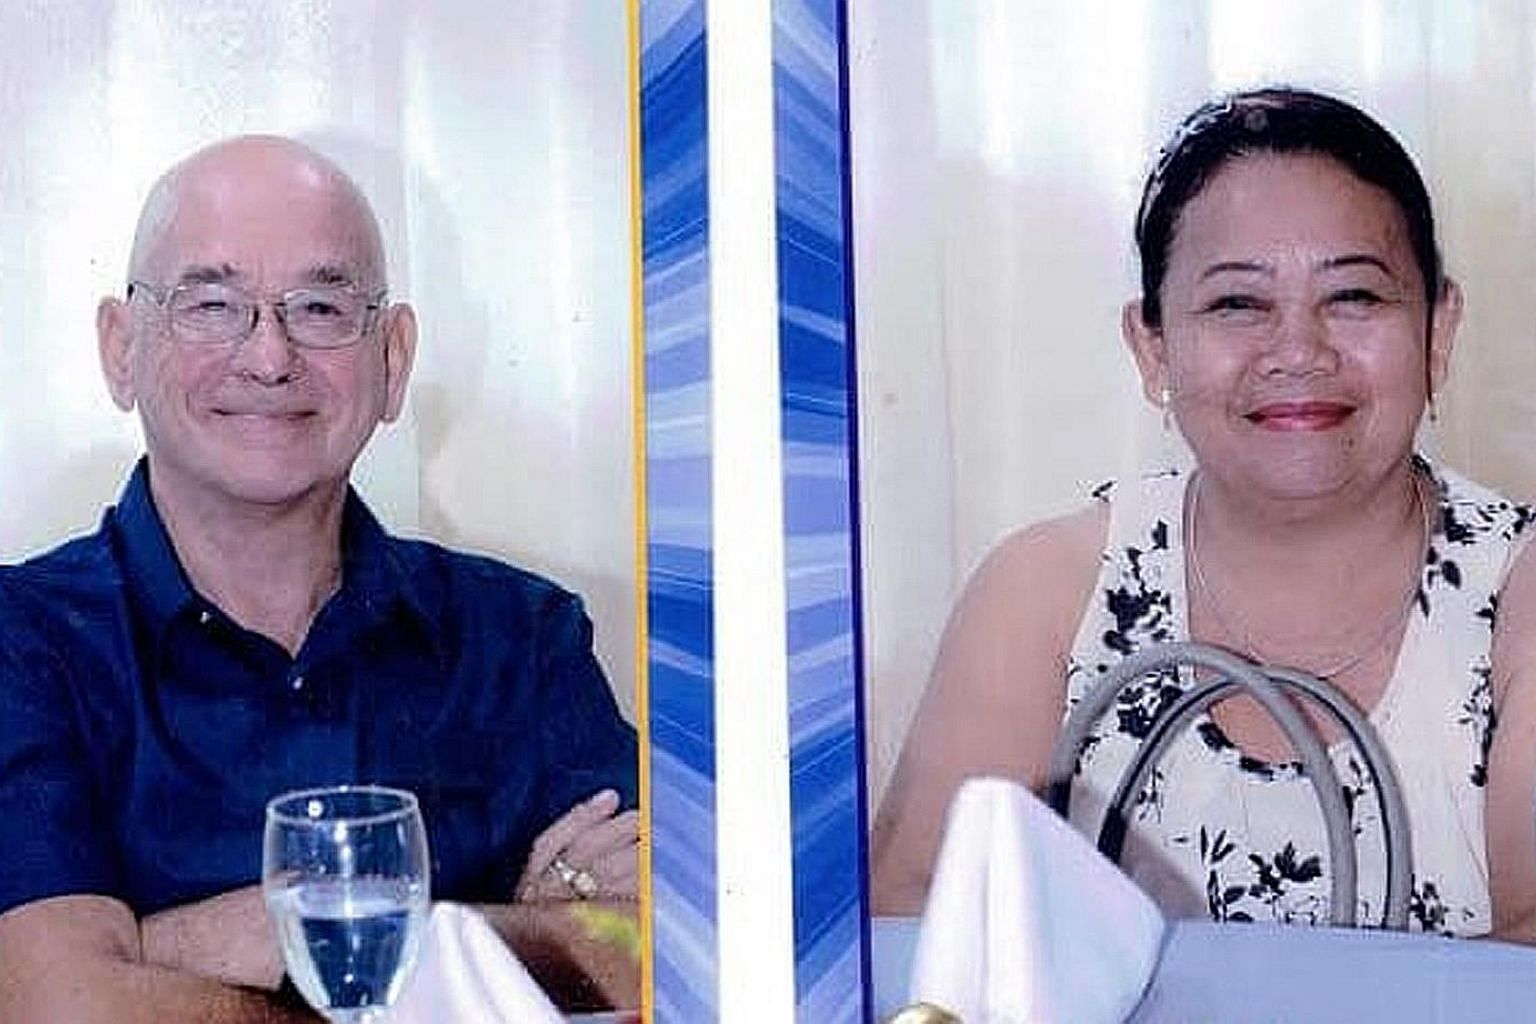 Briton Allan Arthur Hyrons and his Filipino wife Welma Paglinawan-Hyrons were abducted by gunmen from a beach resort.